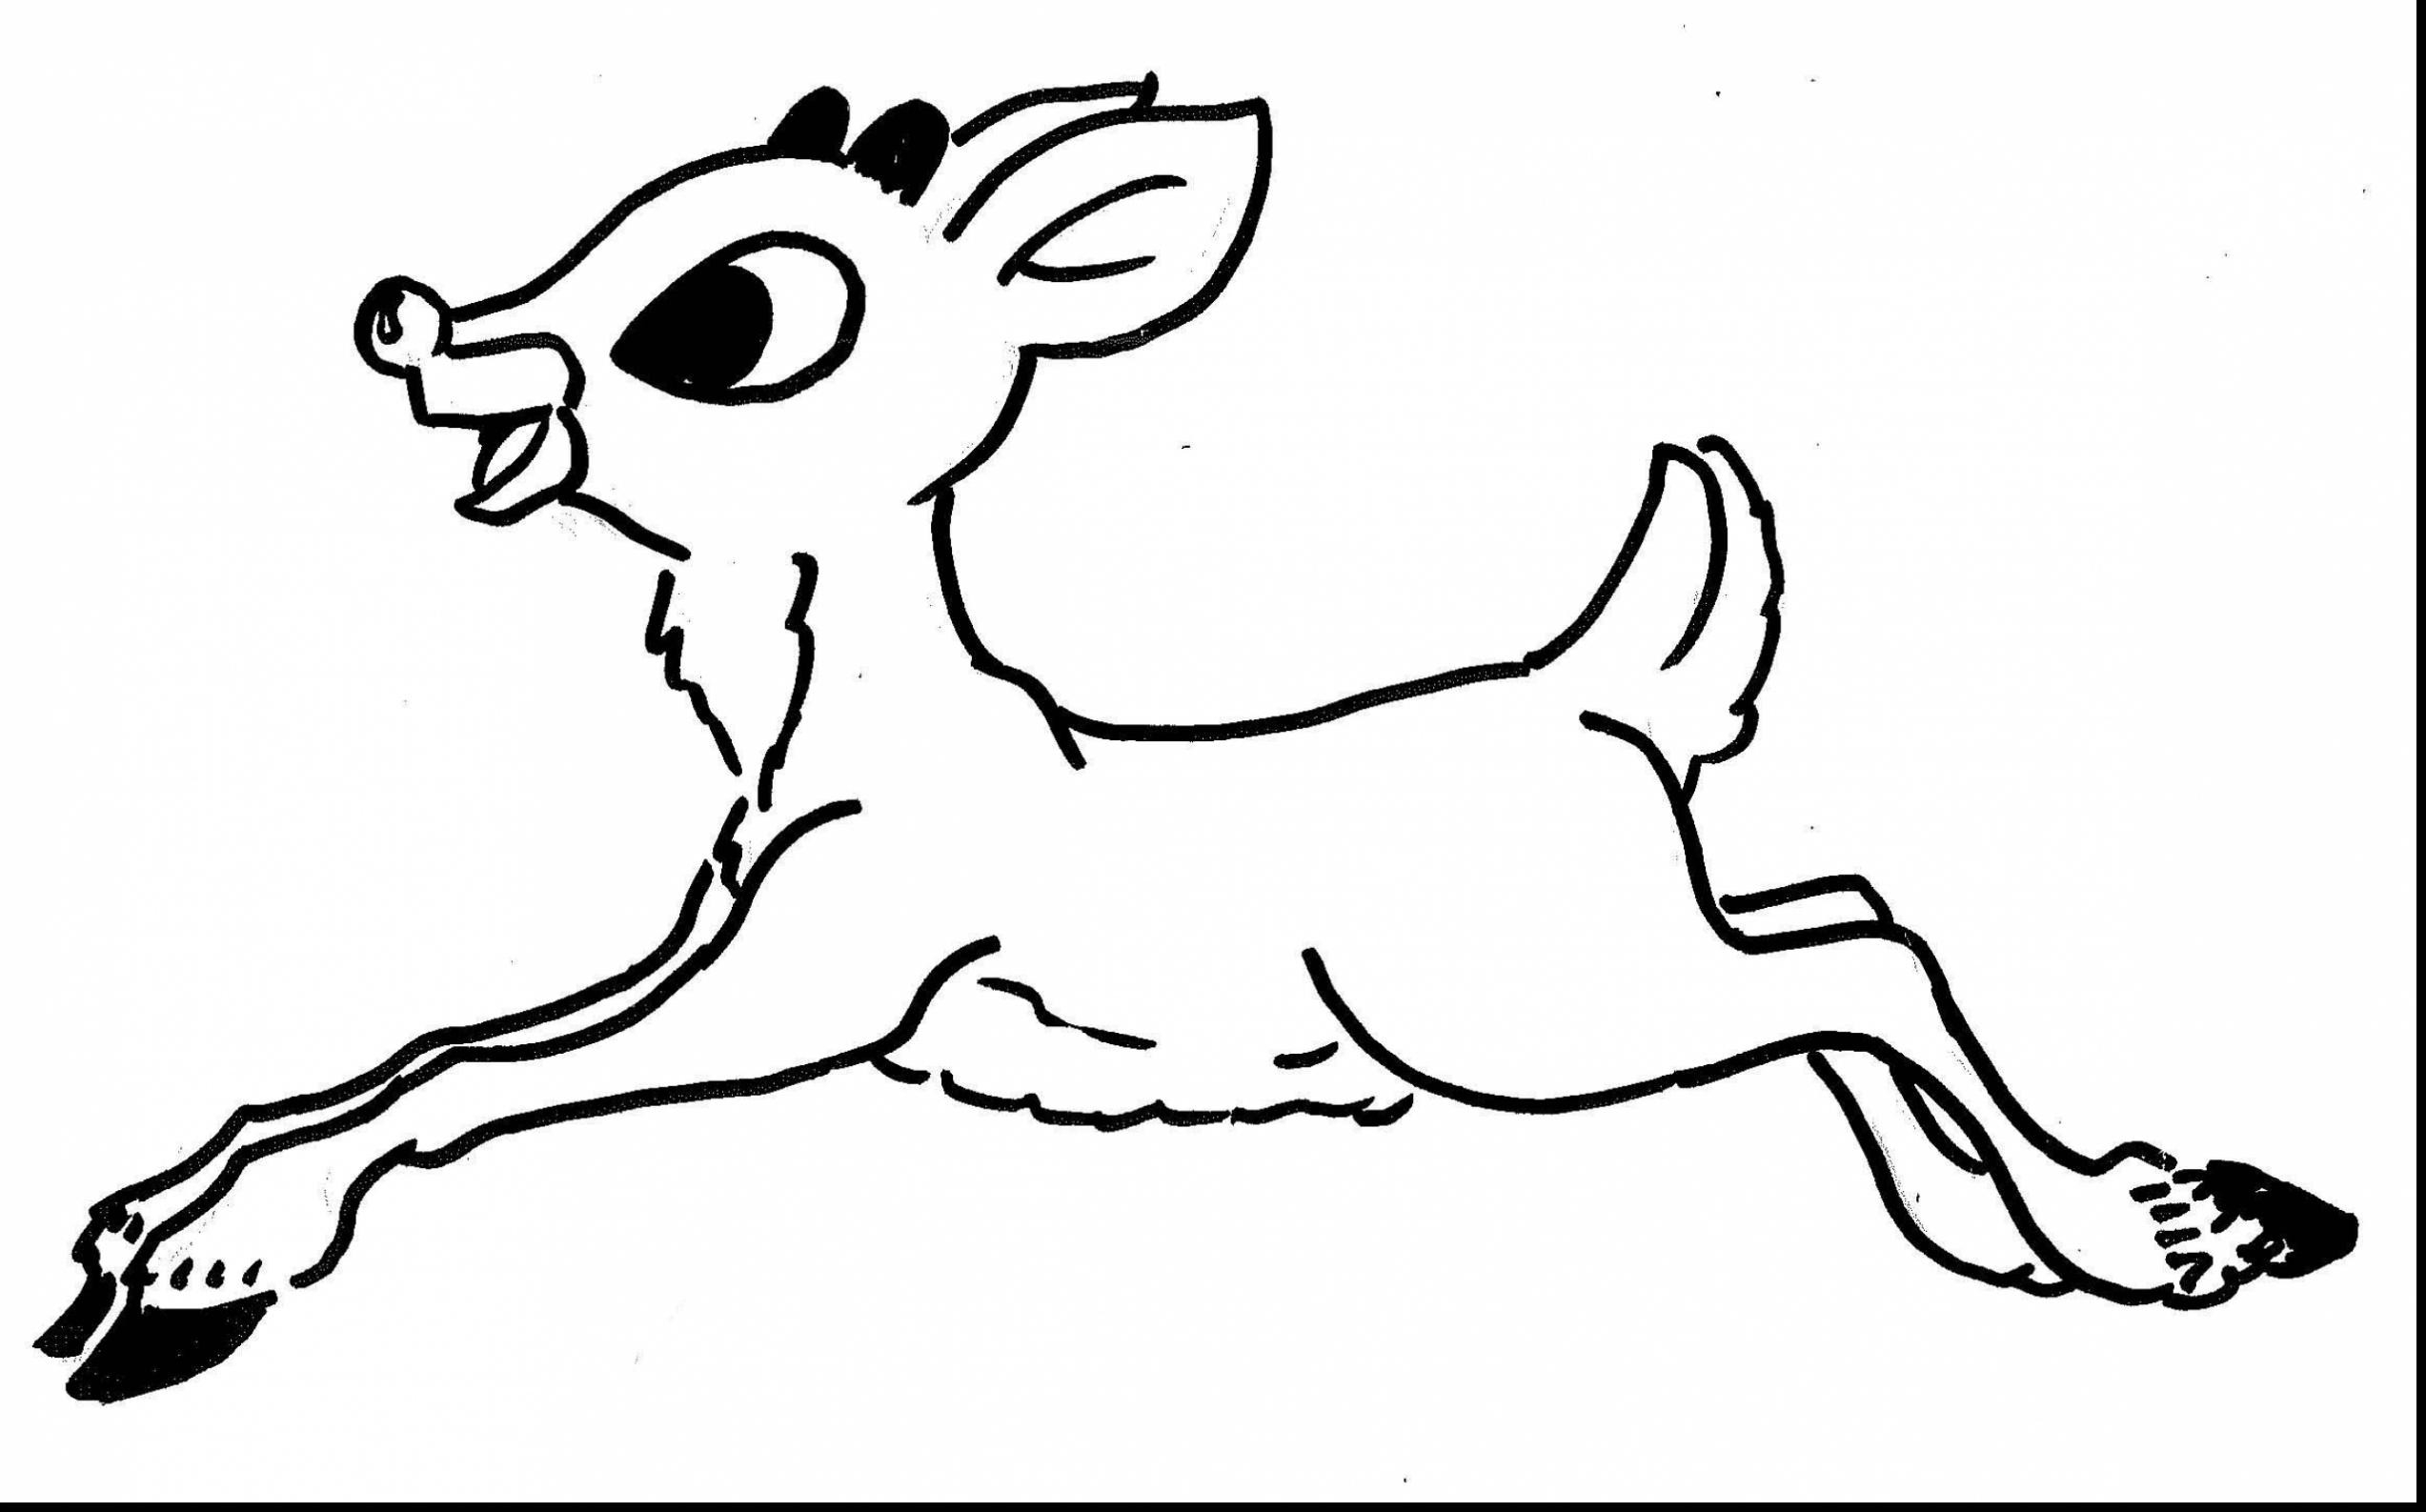 Christmas Santa S Reindeer Coloring Pages With Rudolph The Red Nosed To Print Free